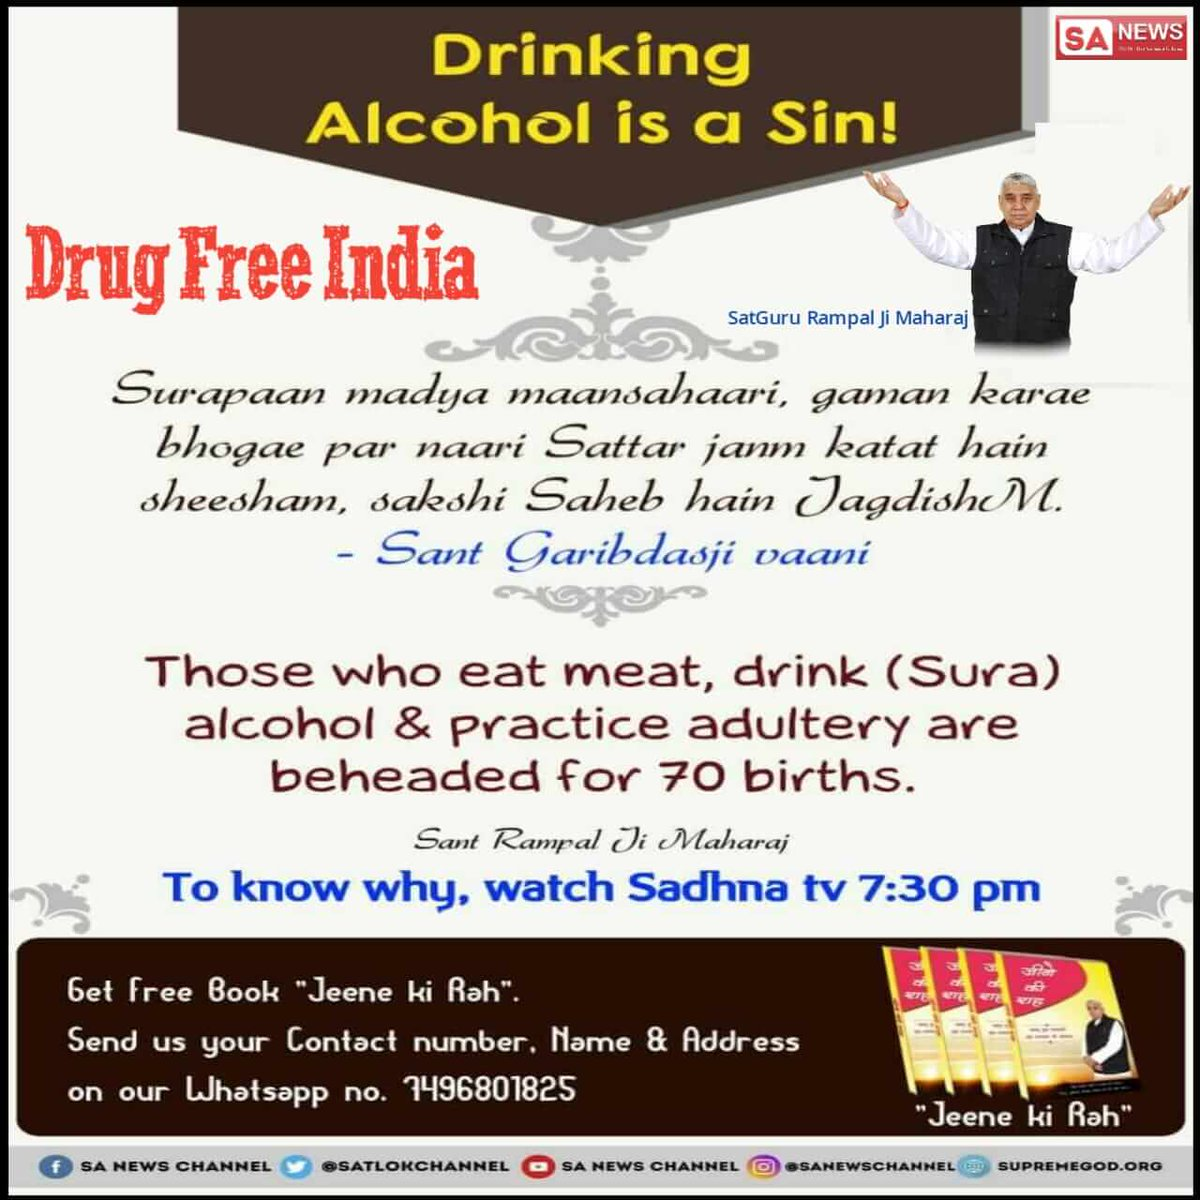 #ThursdayThoughts #DrugFreeIndia Tobacco originated from cow&#39;s blood. Never ever consume tobacco! It is a heinous sin. - SatGuru Rampal Ji Maharaj<br>http://pic.twitter.com/mpKZDtUs1O